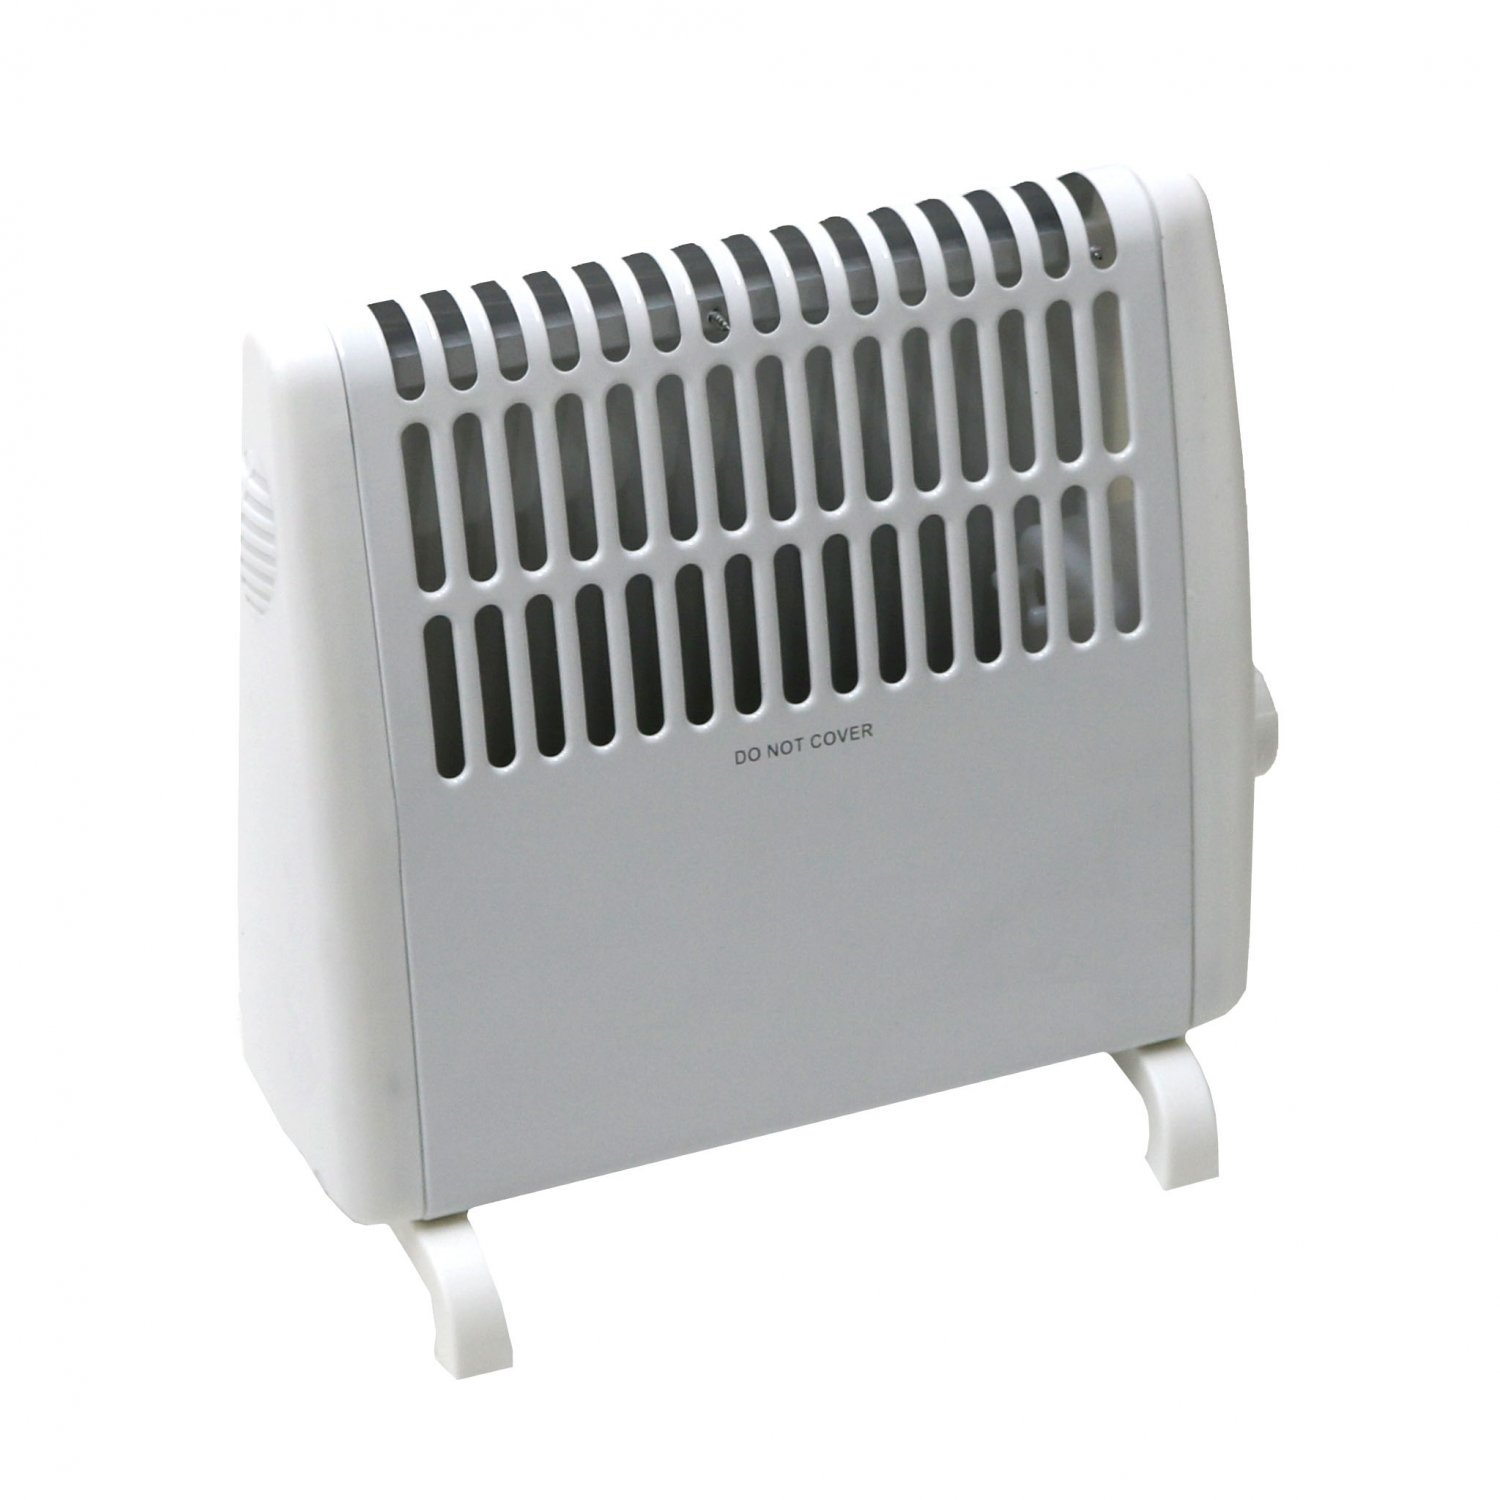 (RU25) 450W Frost Electric Convector Heater Free Standing. 450W Frost Electric Convector Heater...